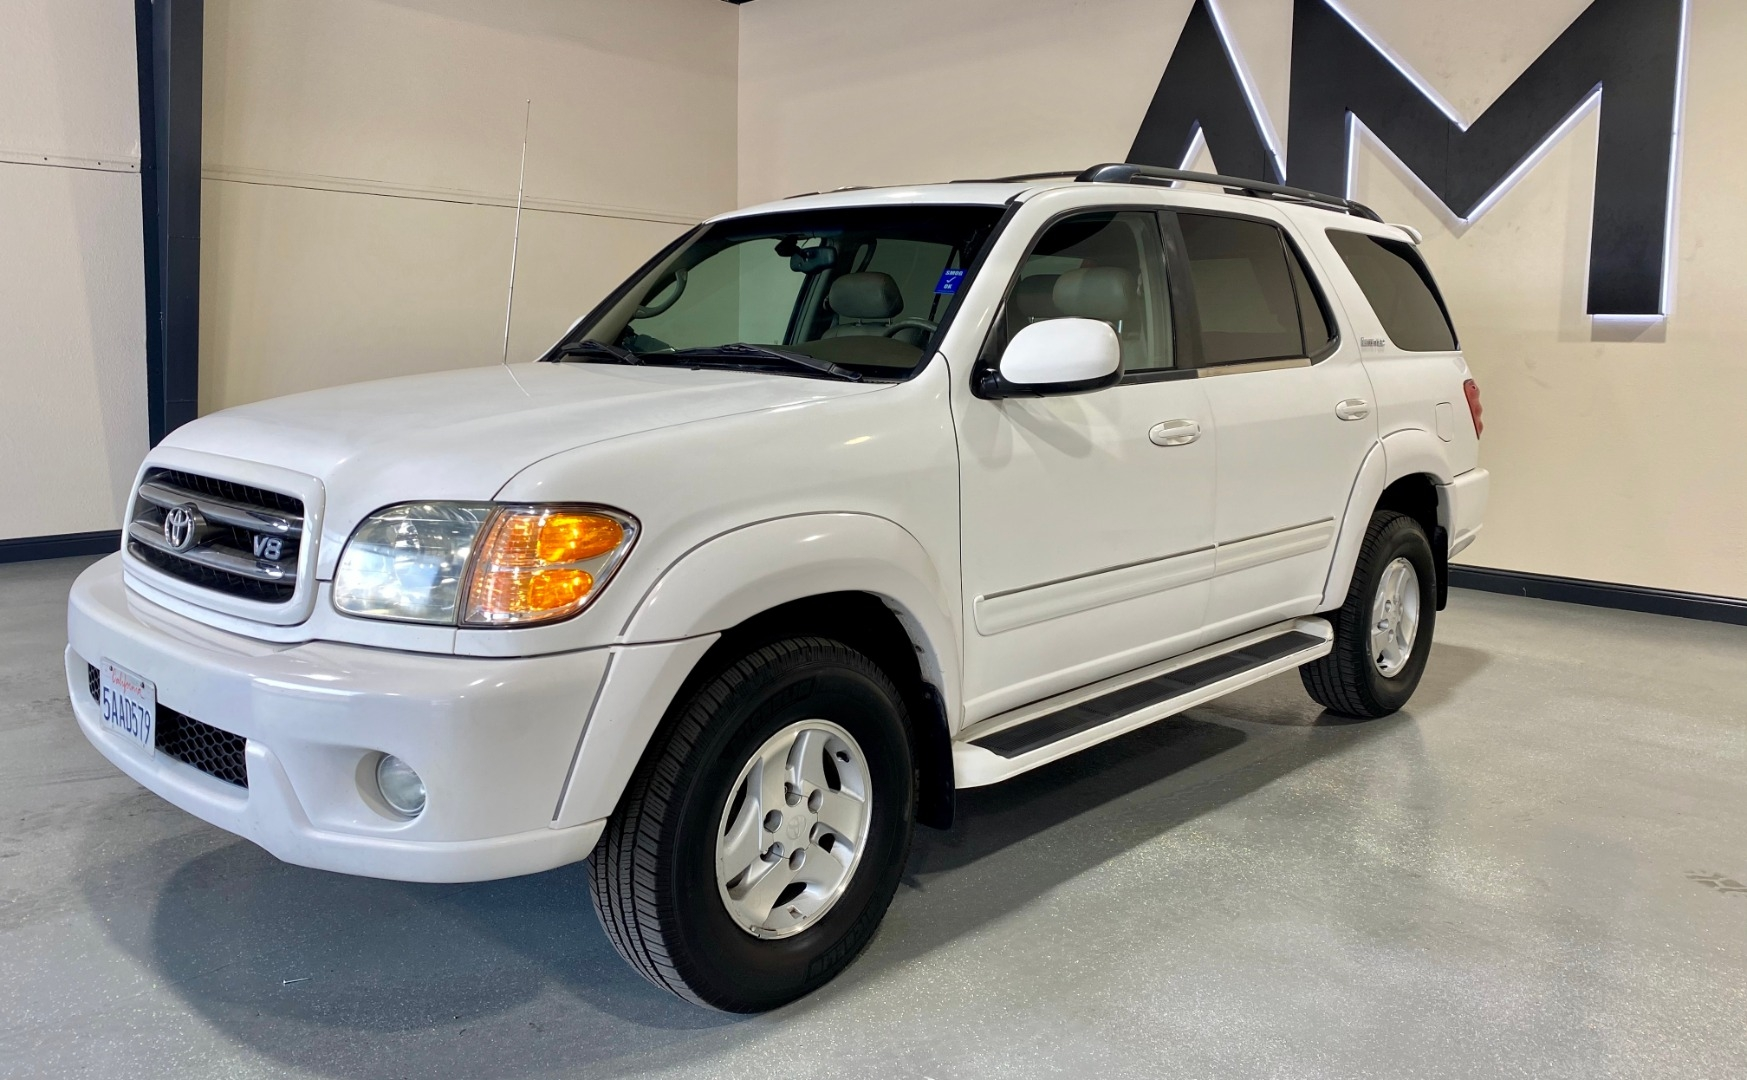 2002 toyota sequoia limited 4wd fully loaded abe s motorsports dealership in sacramento abe s motorsports